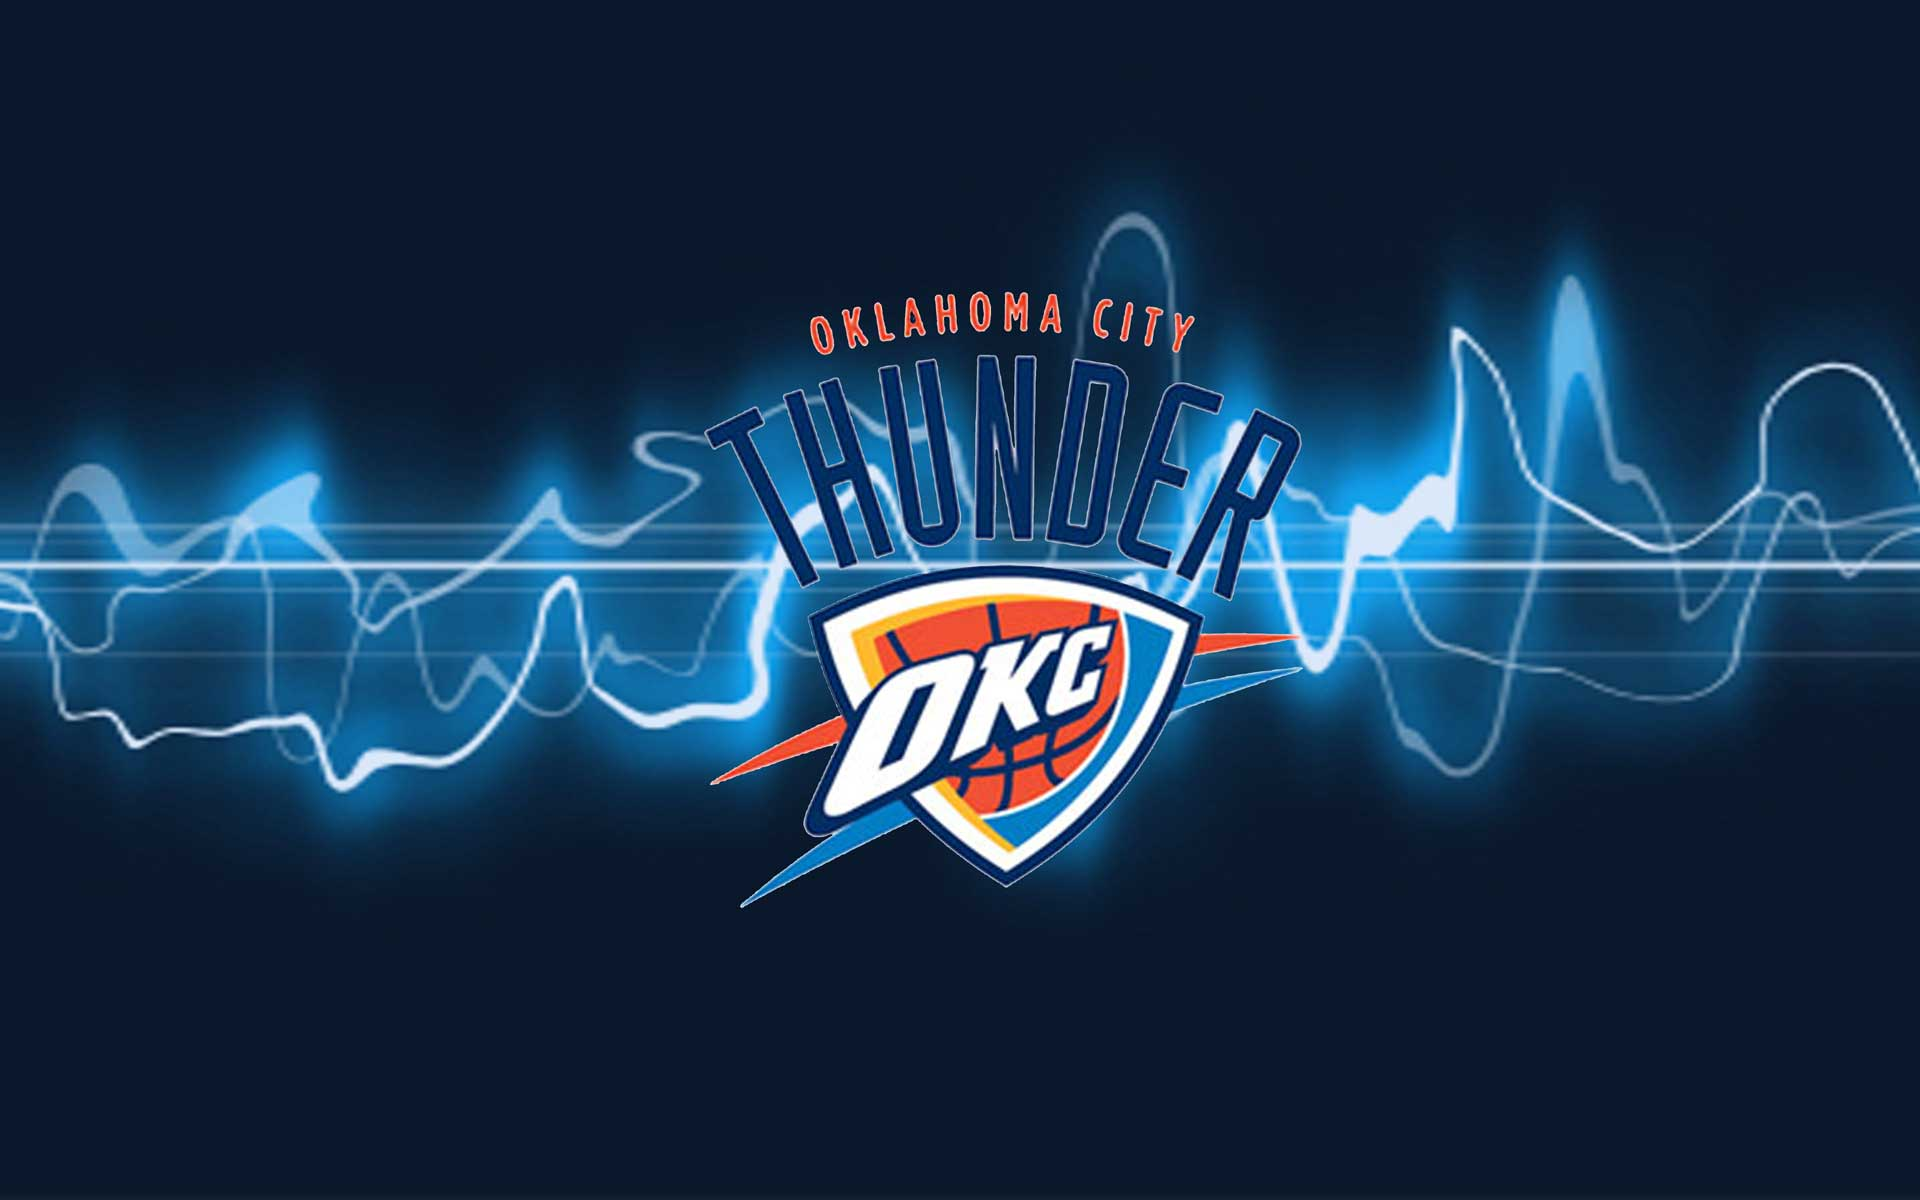 high definition images collection of oklahoma city thunder